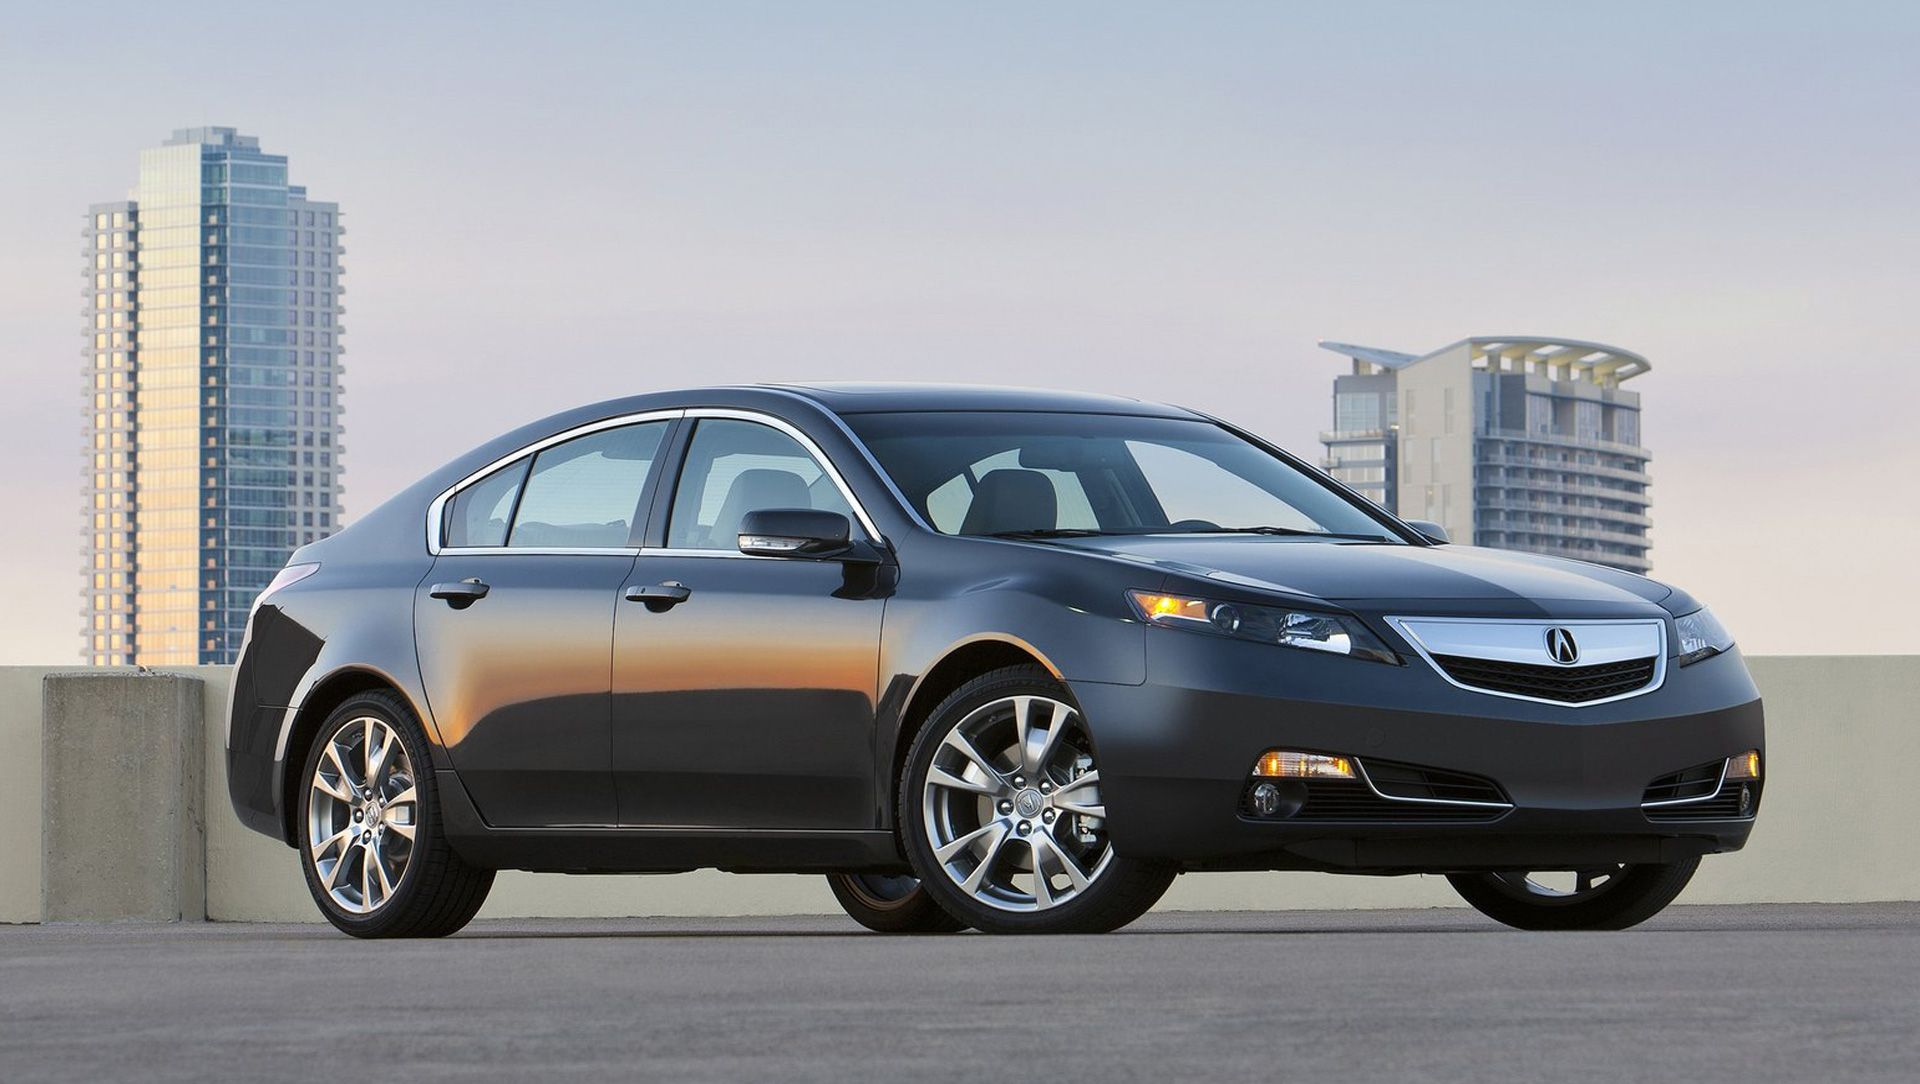 2013 Acura TL Earns The New Highest IIHS Rating Of TOP SAFETY PICK